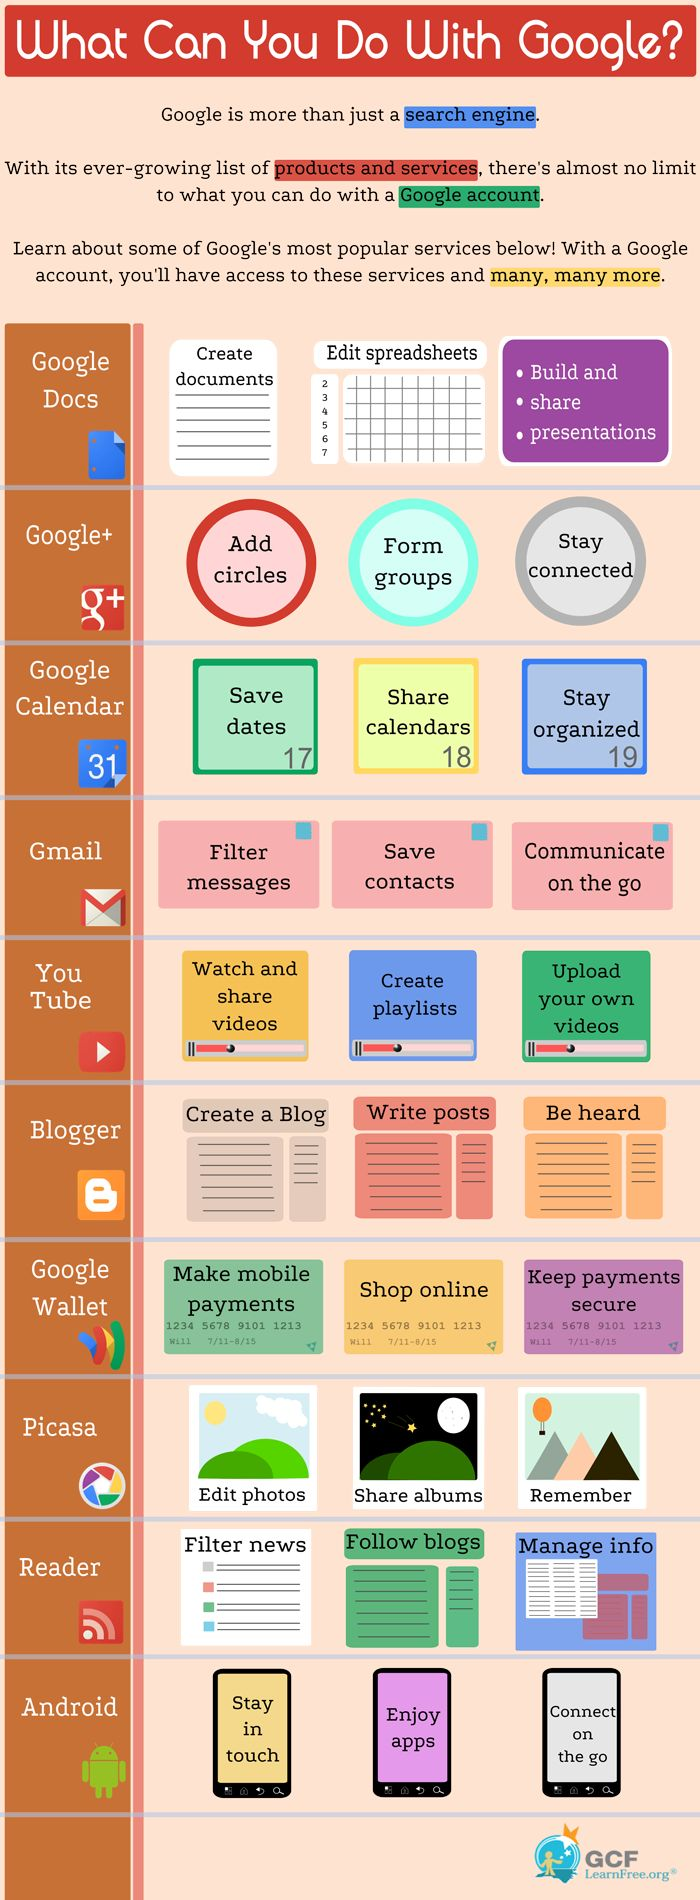 TEACHER'S QUICK GUIDE TO GOOGLE BEST SERVICES